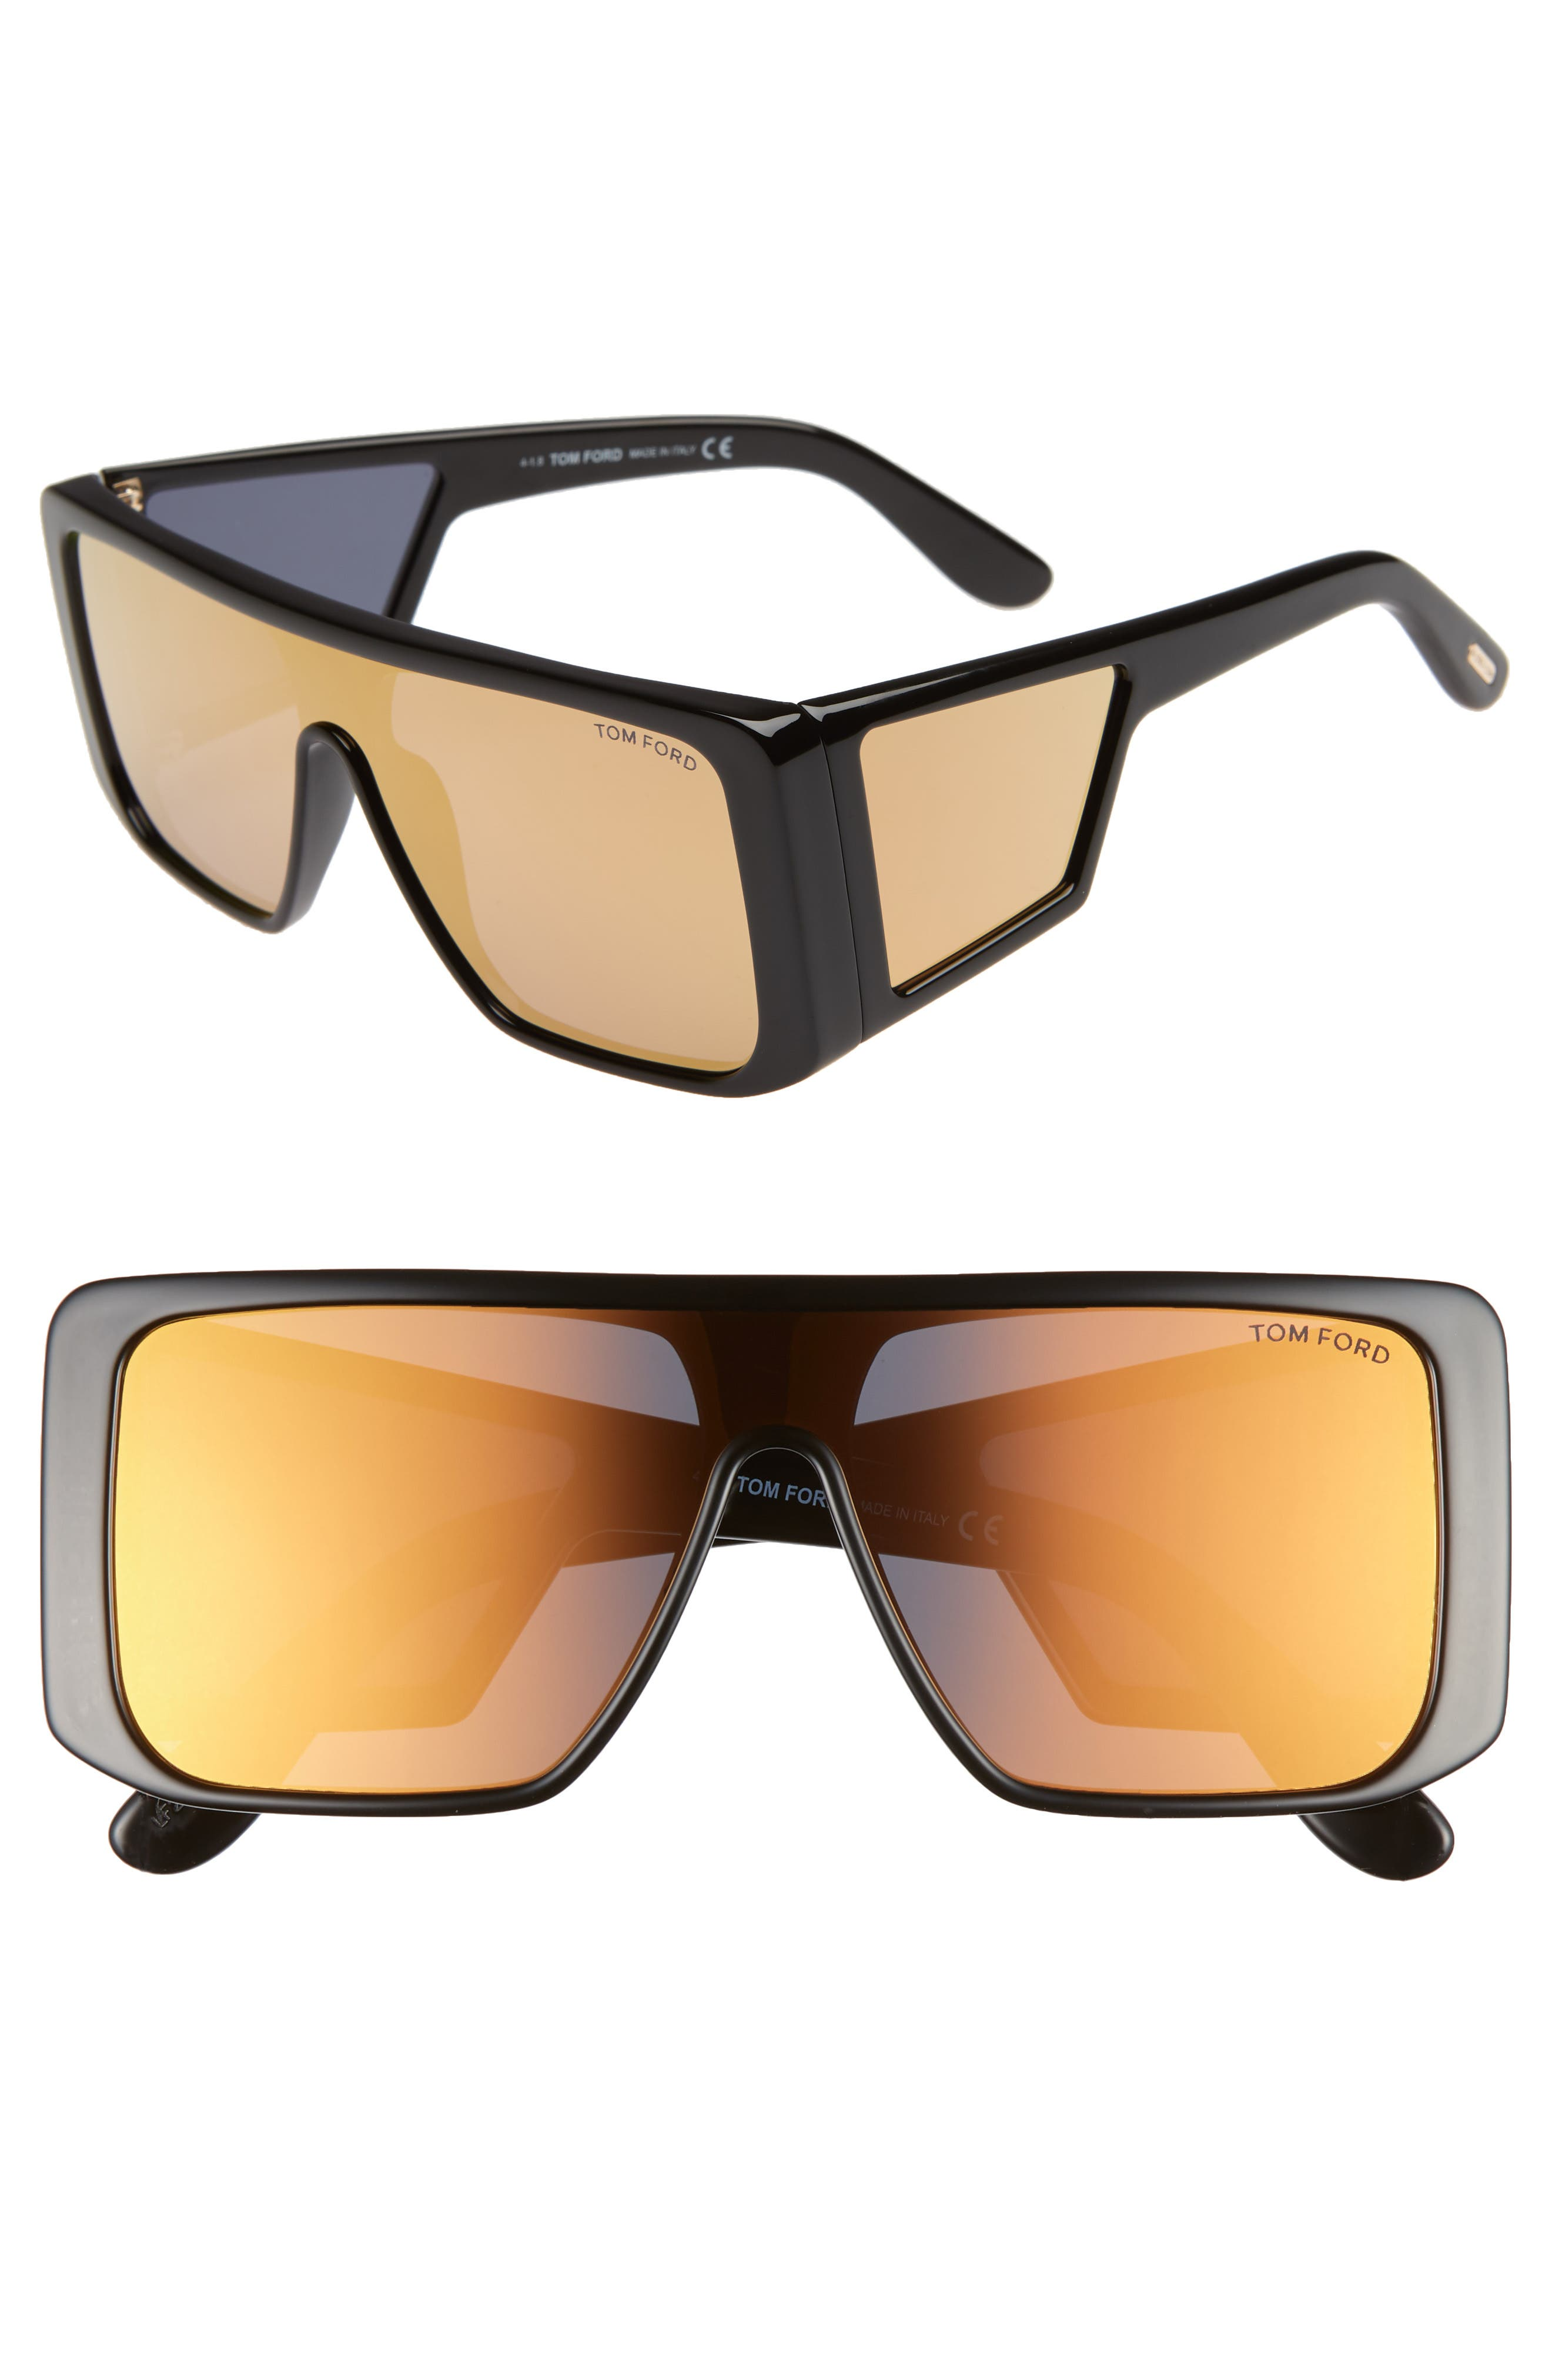 132Mm Atticus Shield Sunglasses - Black/ Rose Gold/ Brown Gold